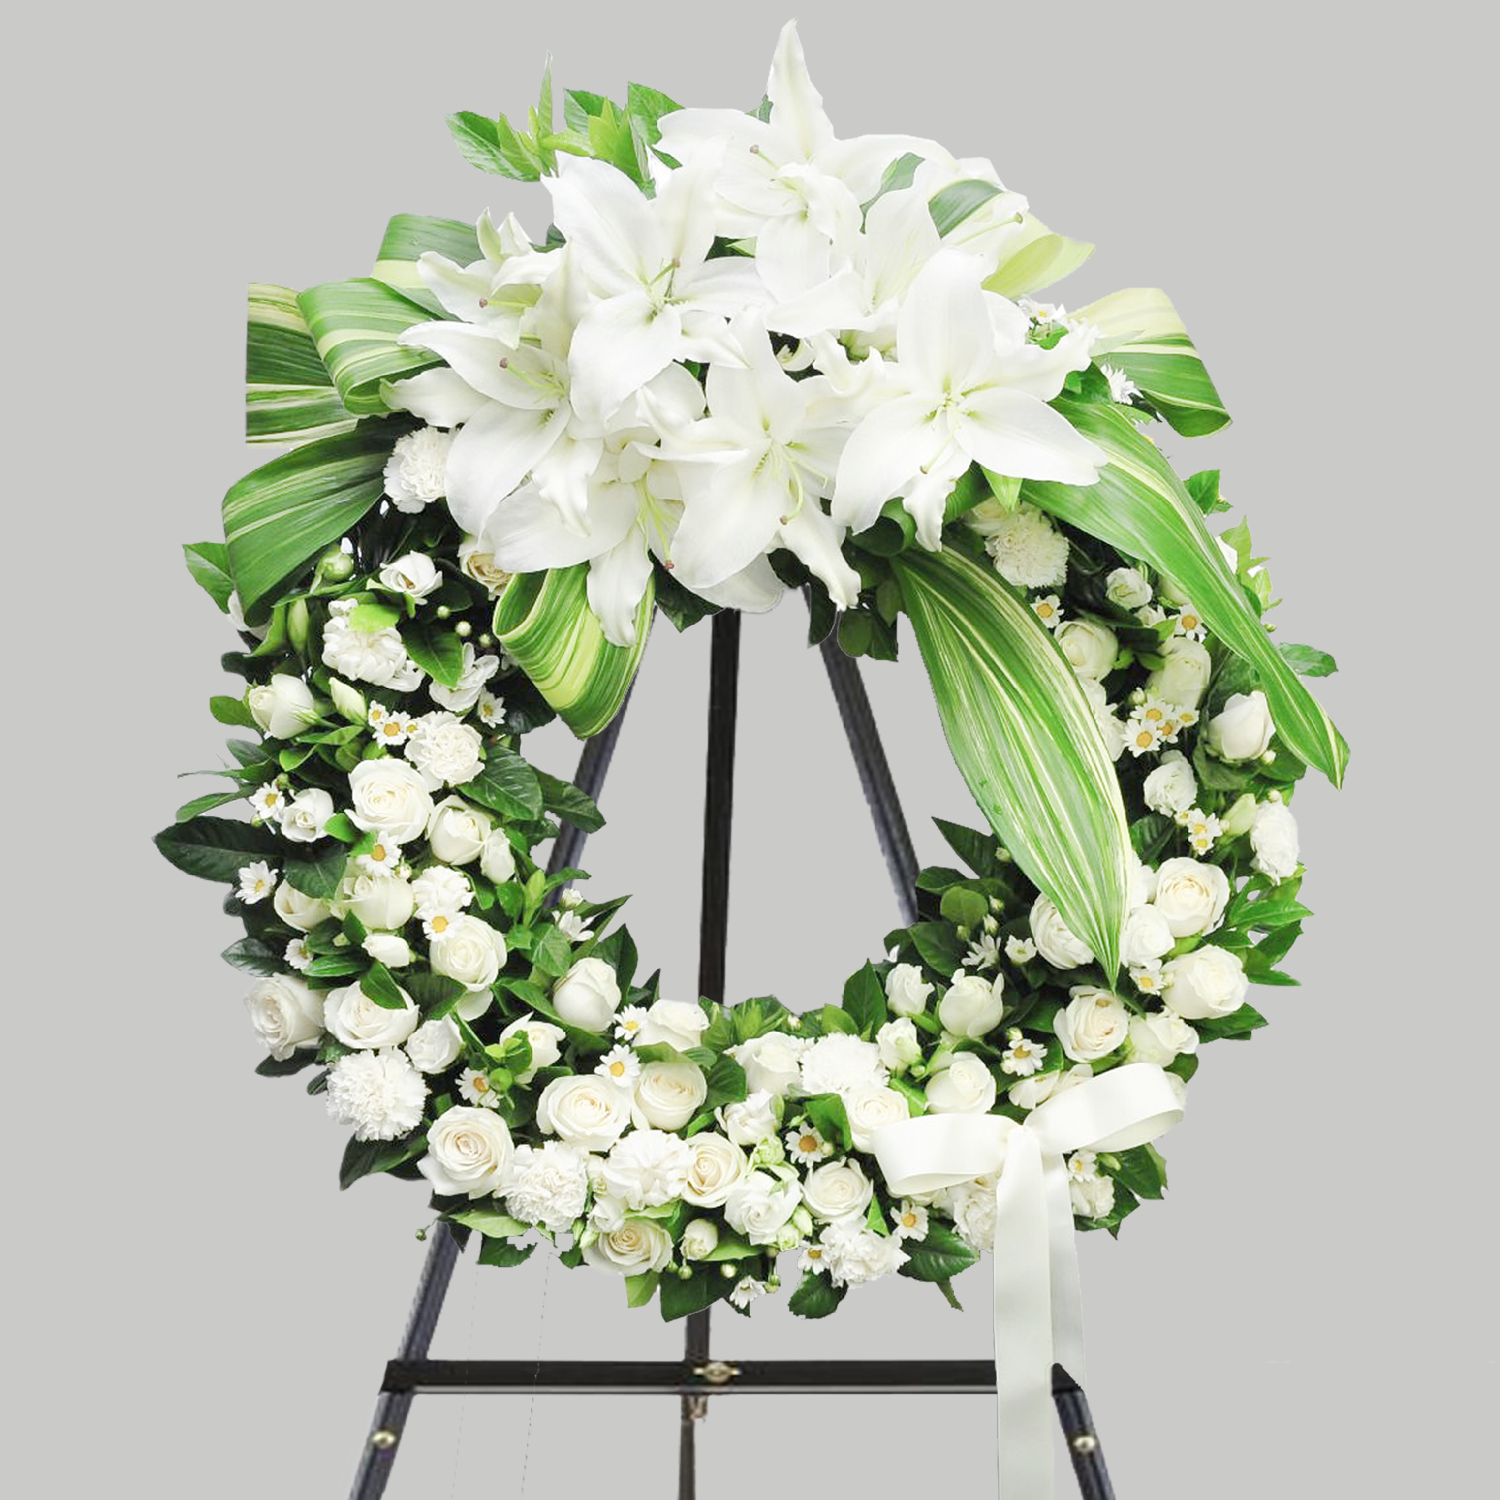 MODERN WHITE FUNERAL WREATH